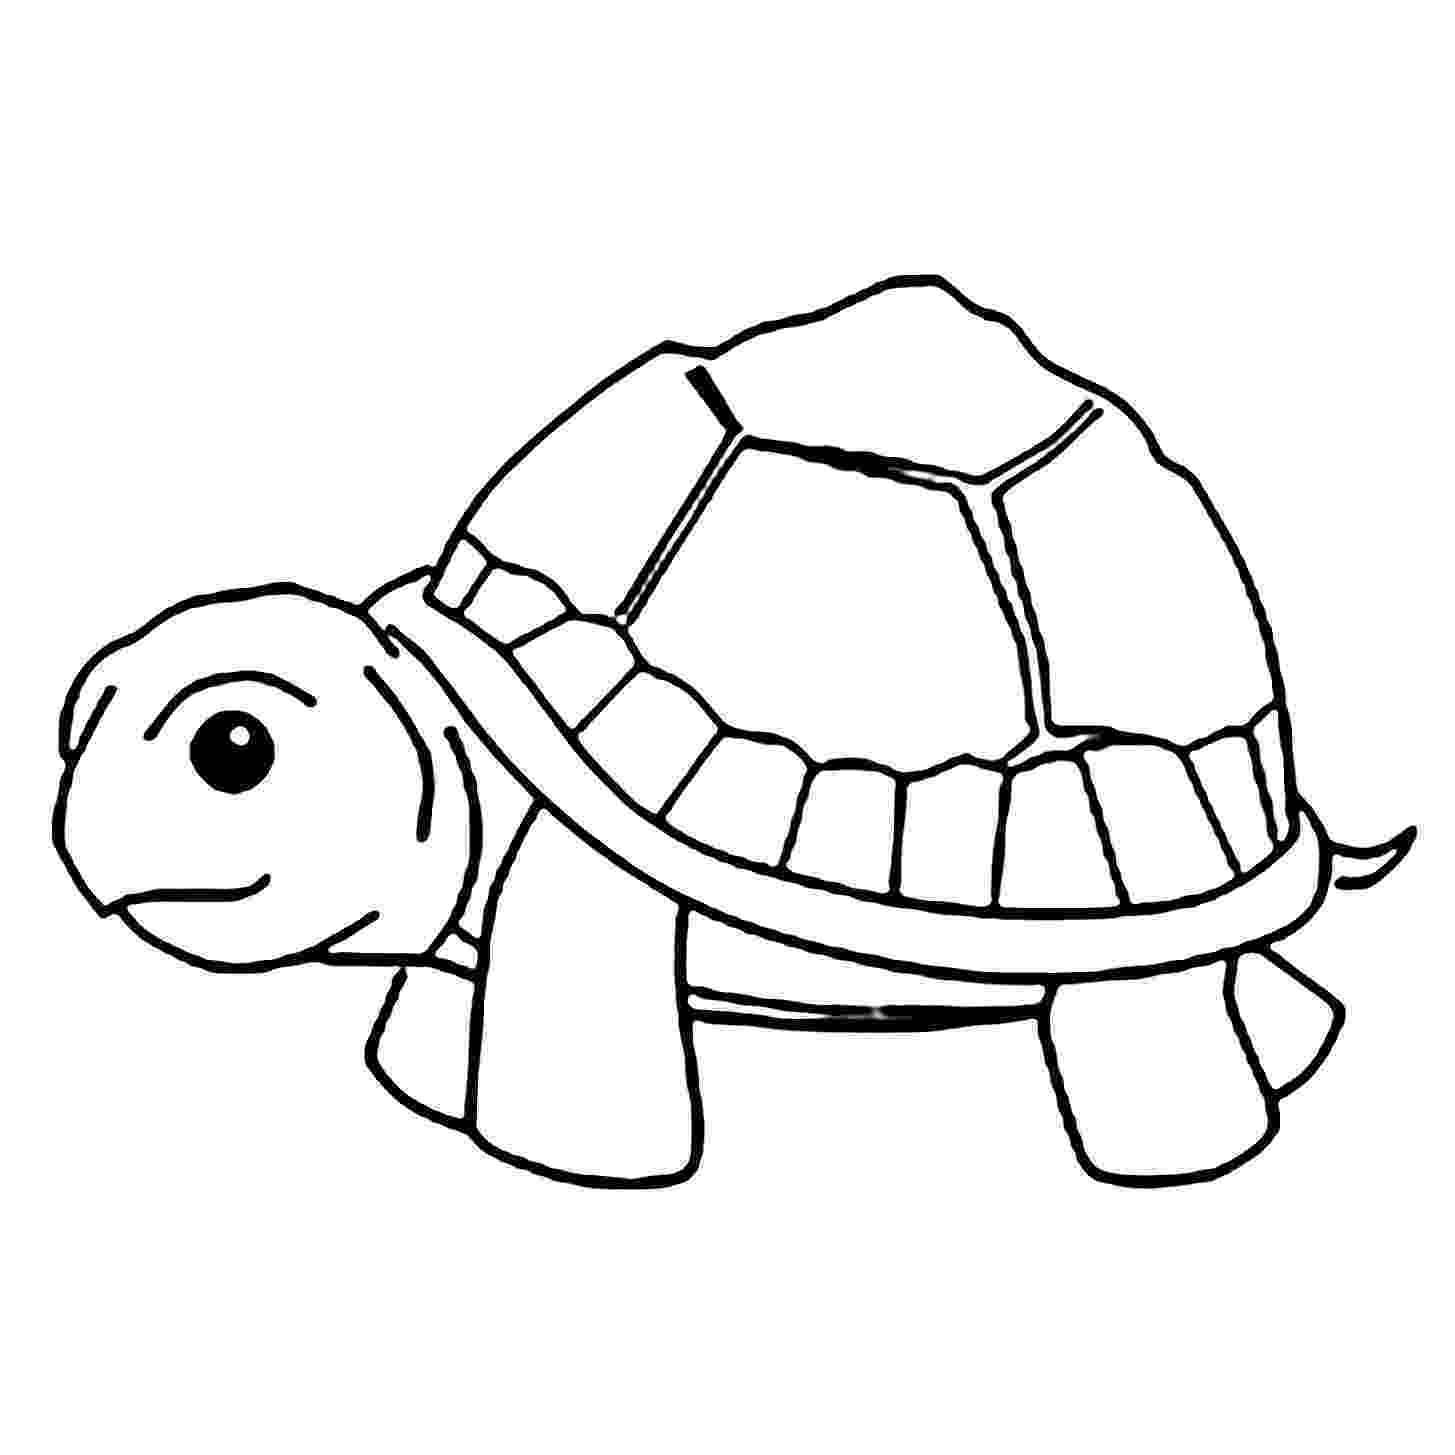 coloring pictures of turtles print download turtle coloring pages as the coloring of turtles pictures